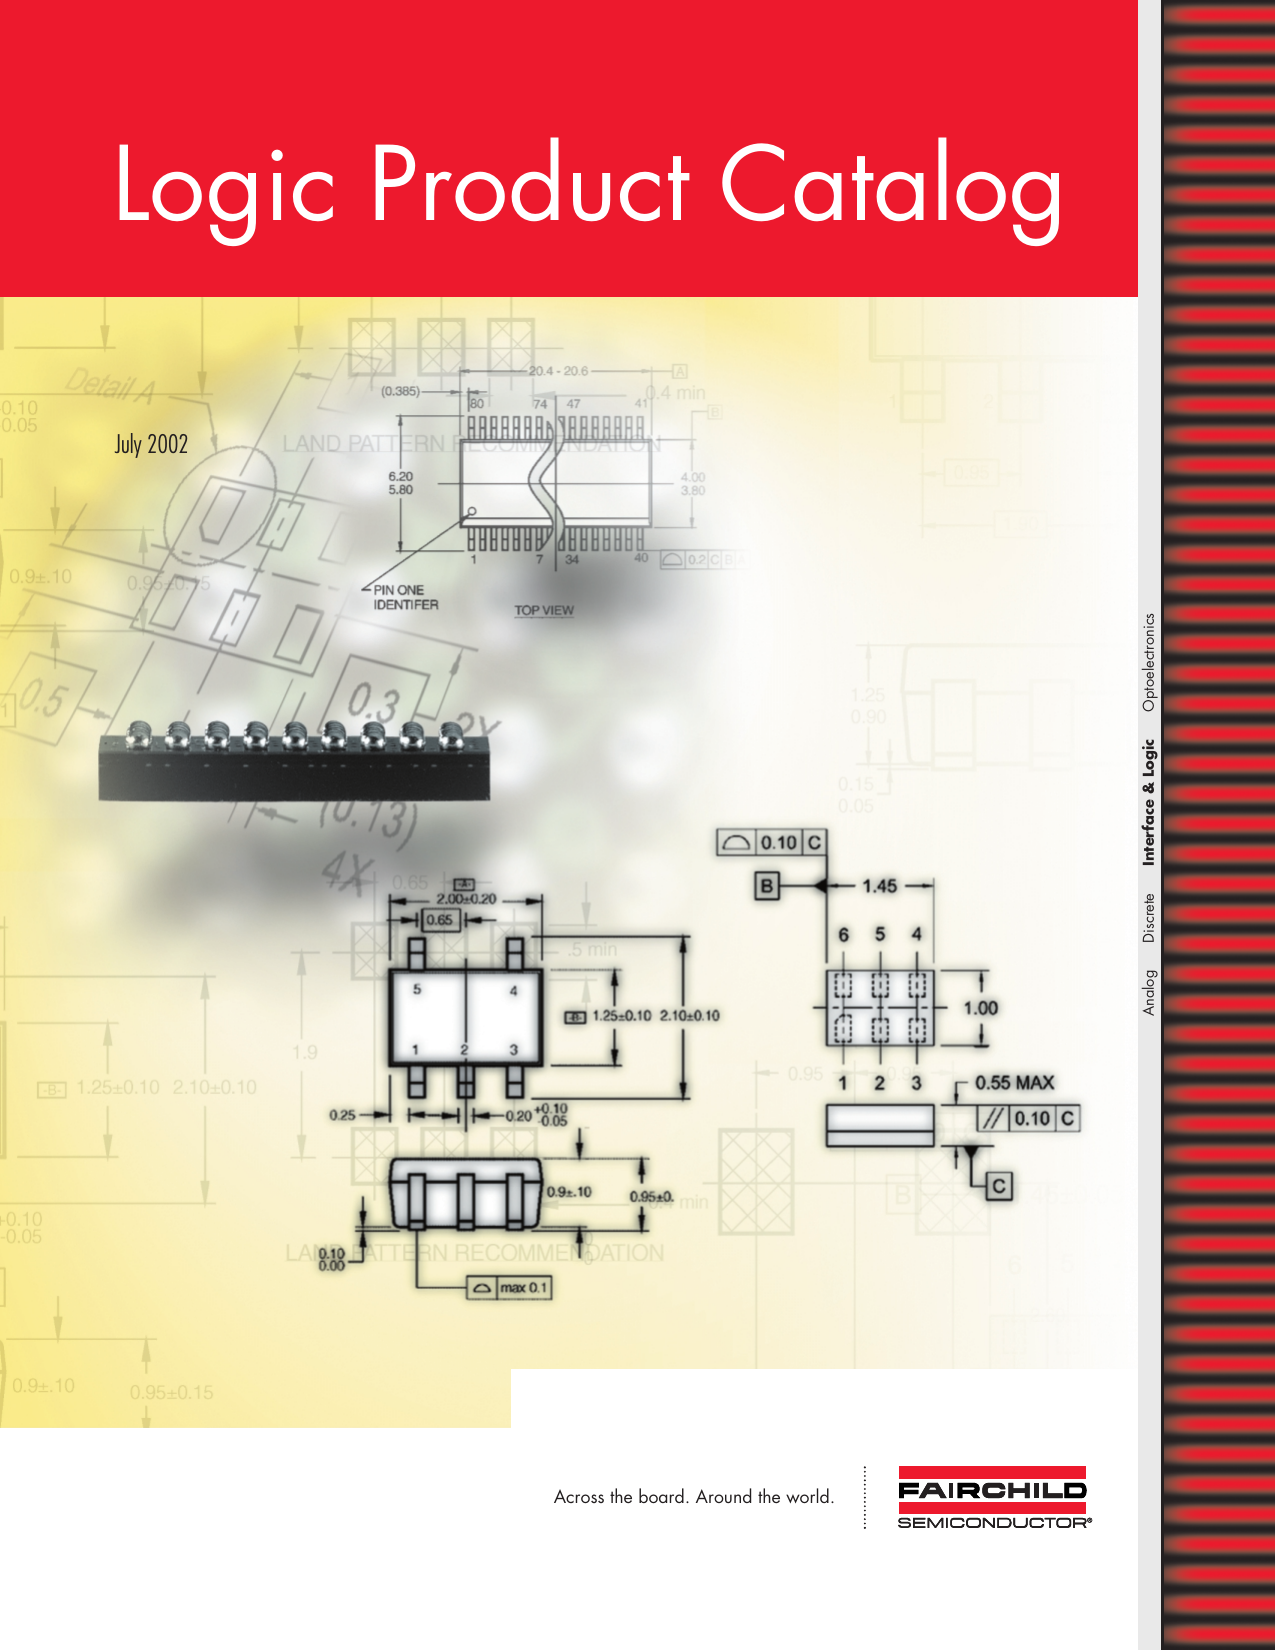 Logic Product Catalog July 2002 Across The Board Around World Seven Segment Display Circuit With 4511 Decoder And 4029 Optoelectronics